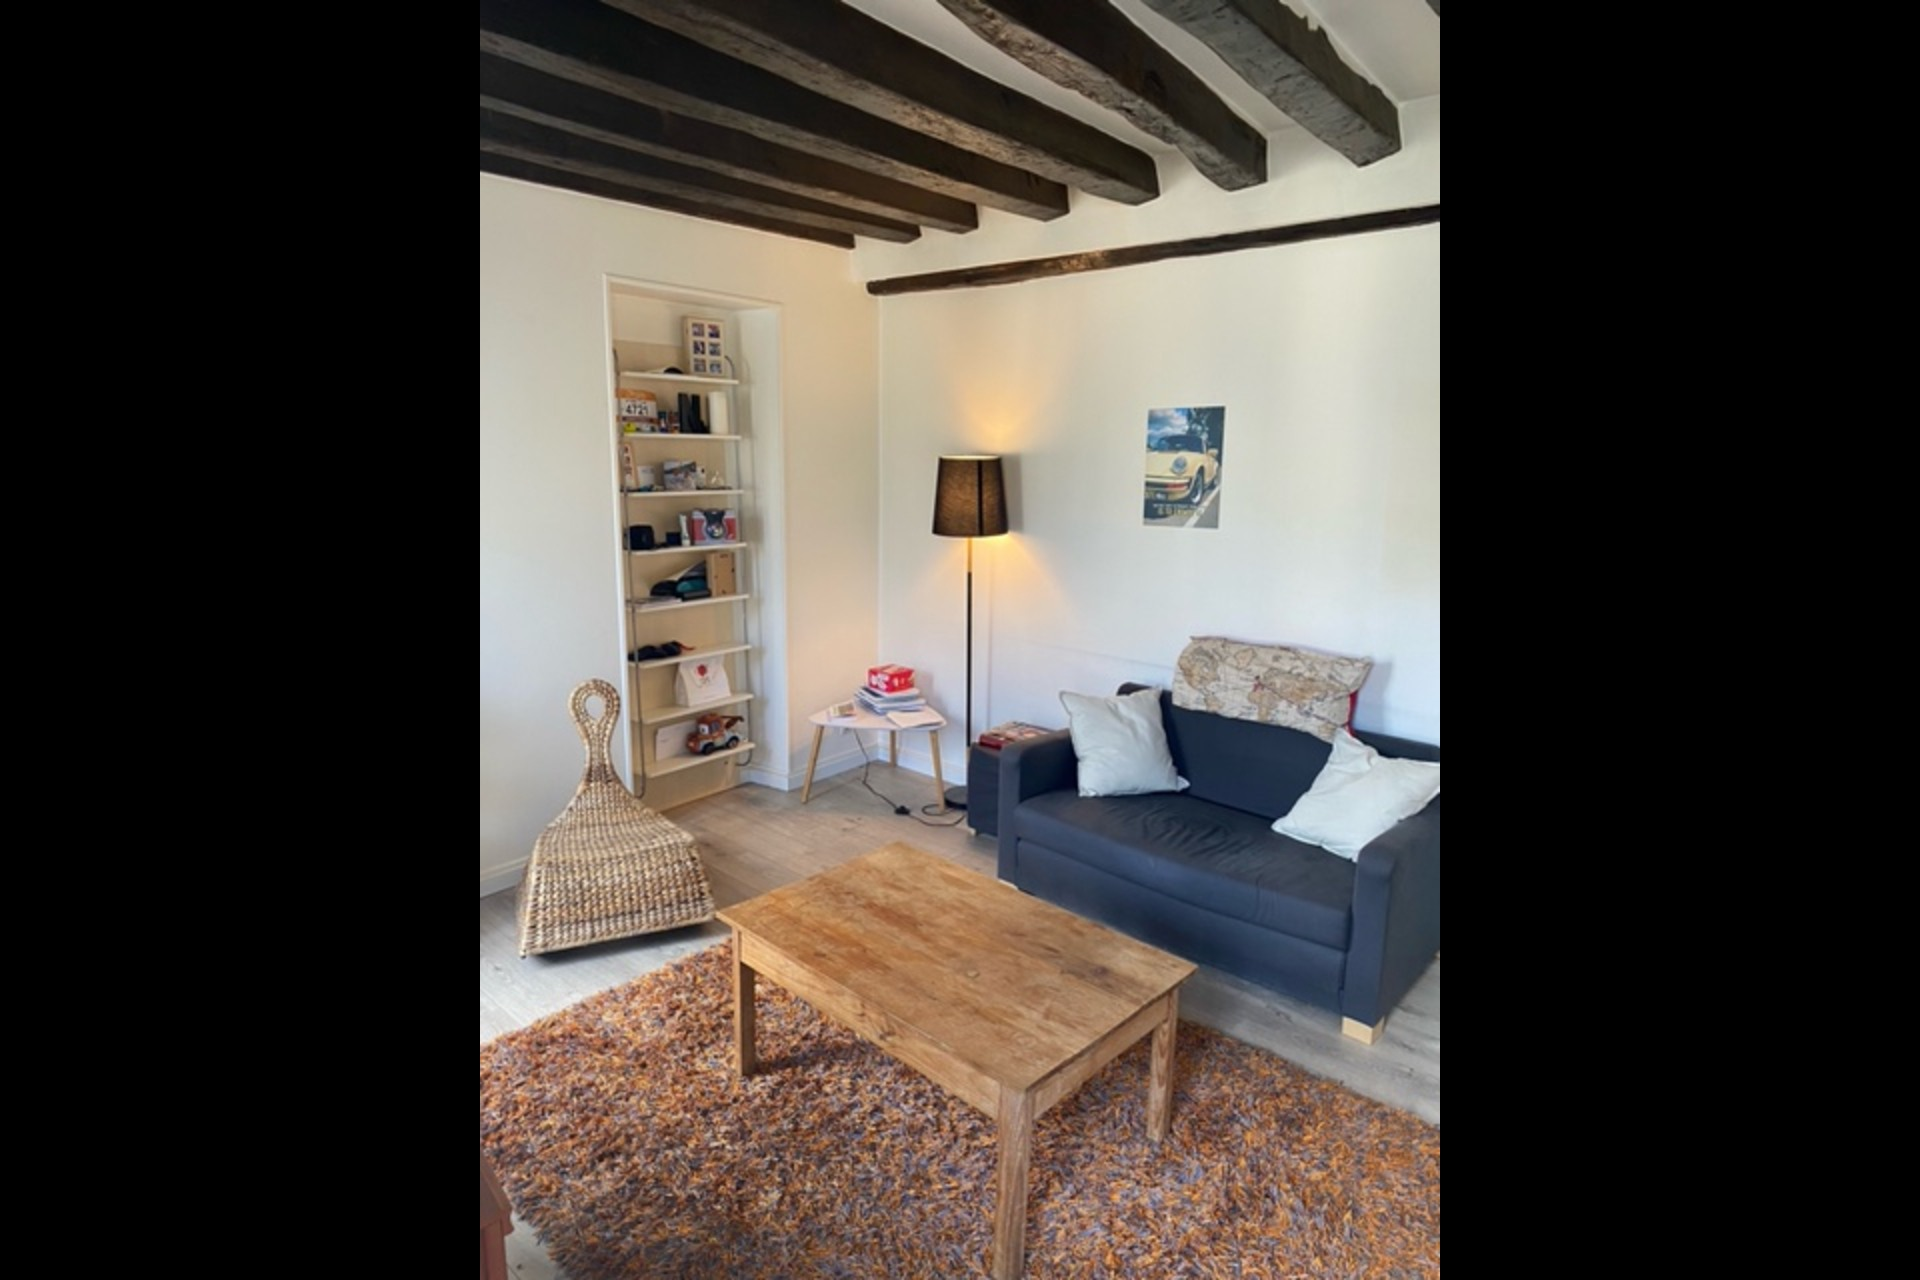 image 0 - Apartment For rent chambourcy - 2 rooms